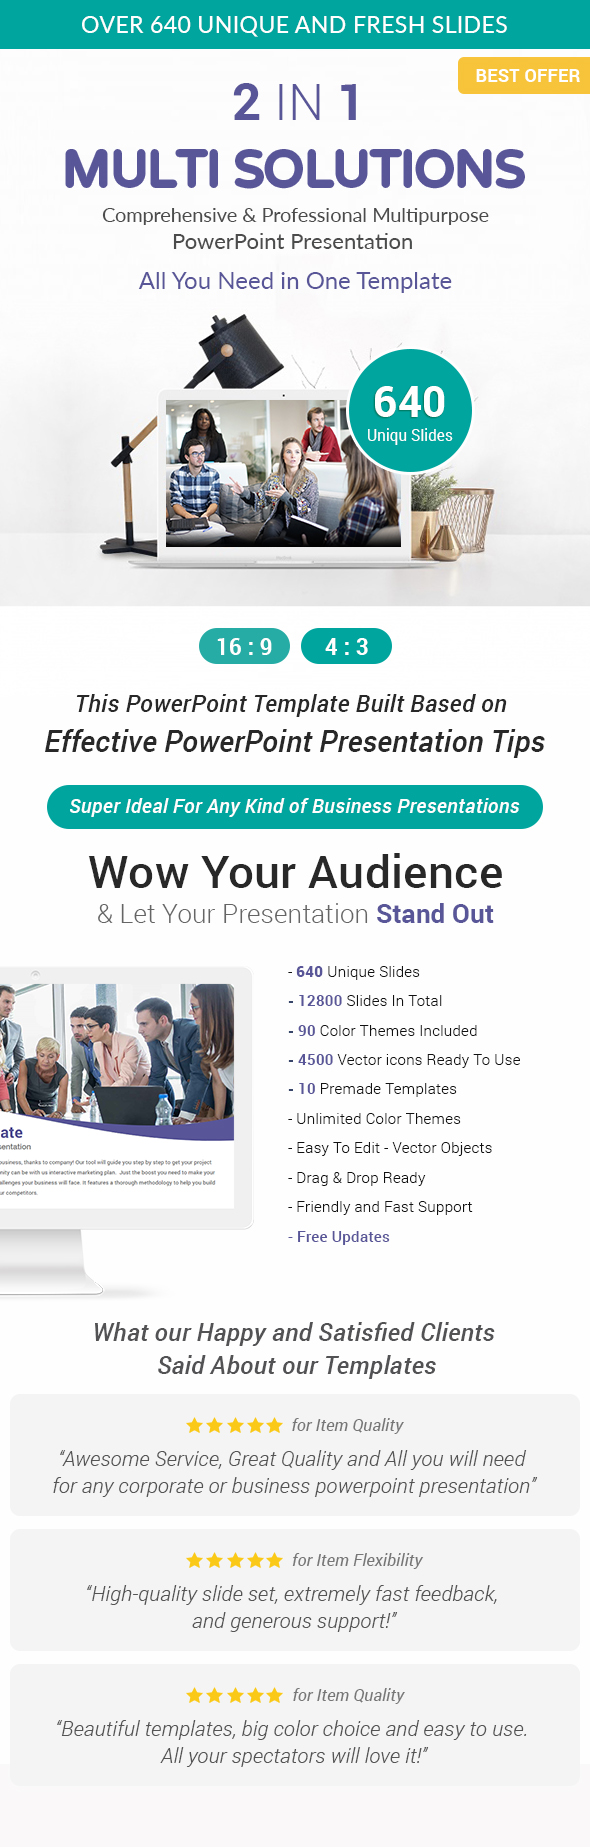 2 In 1 Multi Solutions PowerPoint Presentation Template Bundle - Business PowerPoint Templates